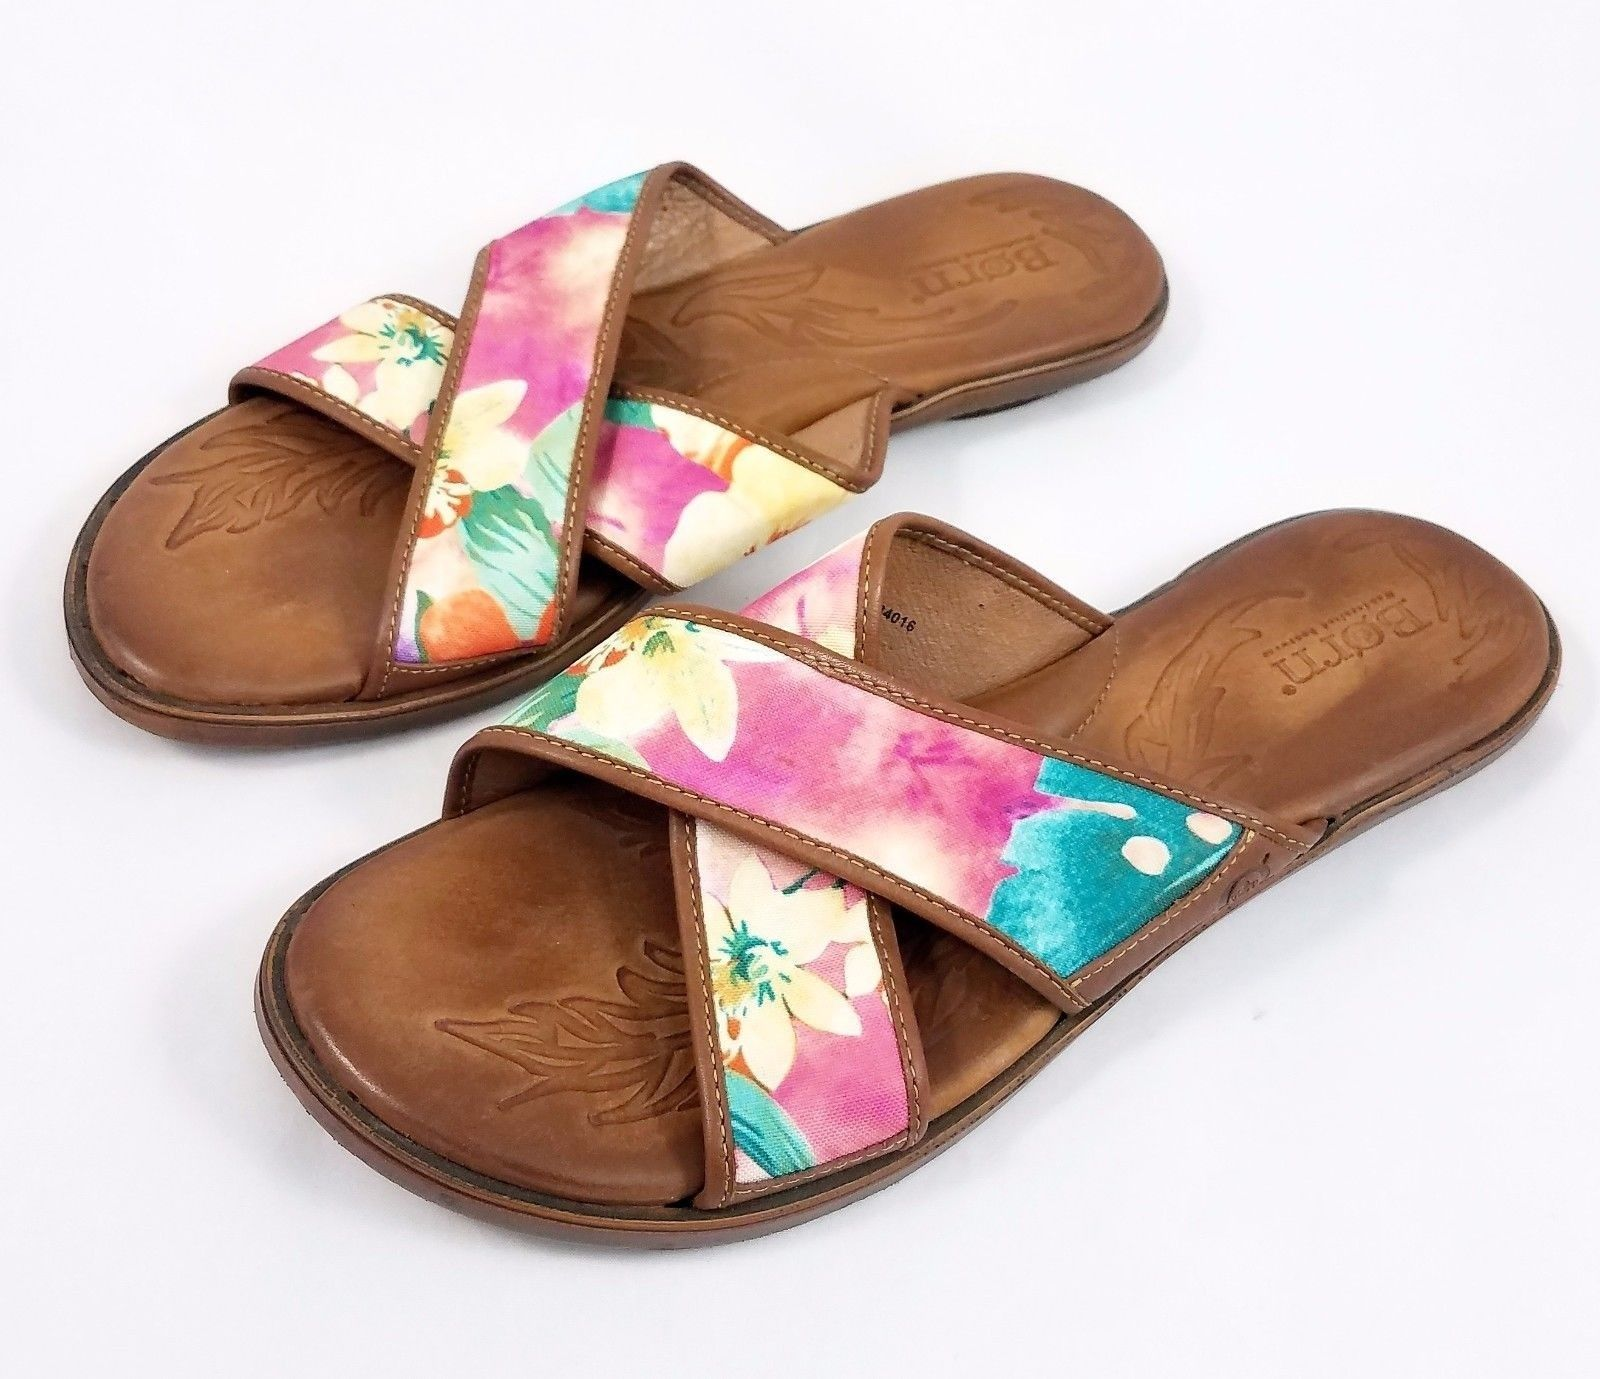 e529313cc5cb Born Brown Leather Multi Color Floral and 50 similar items